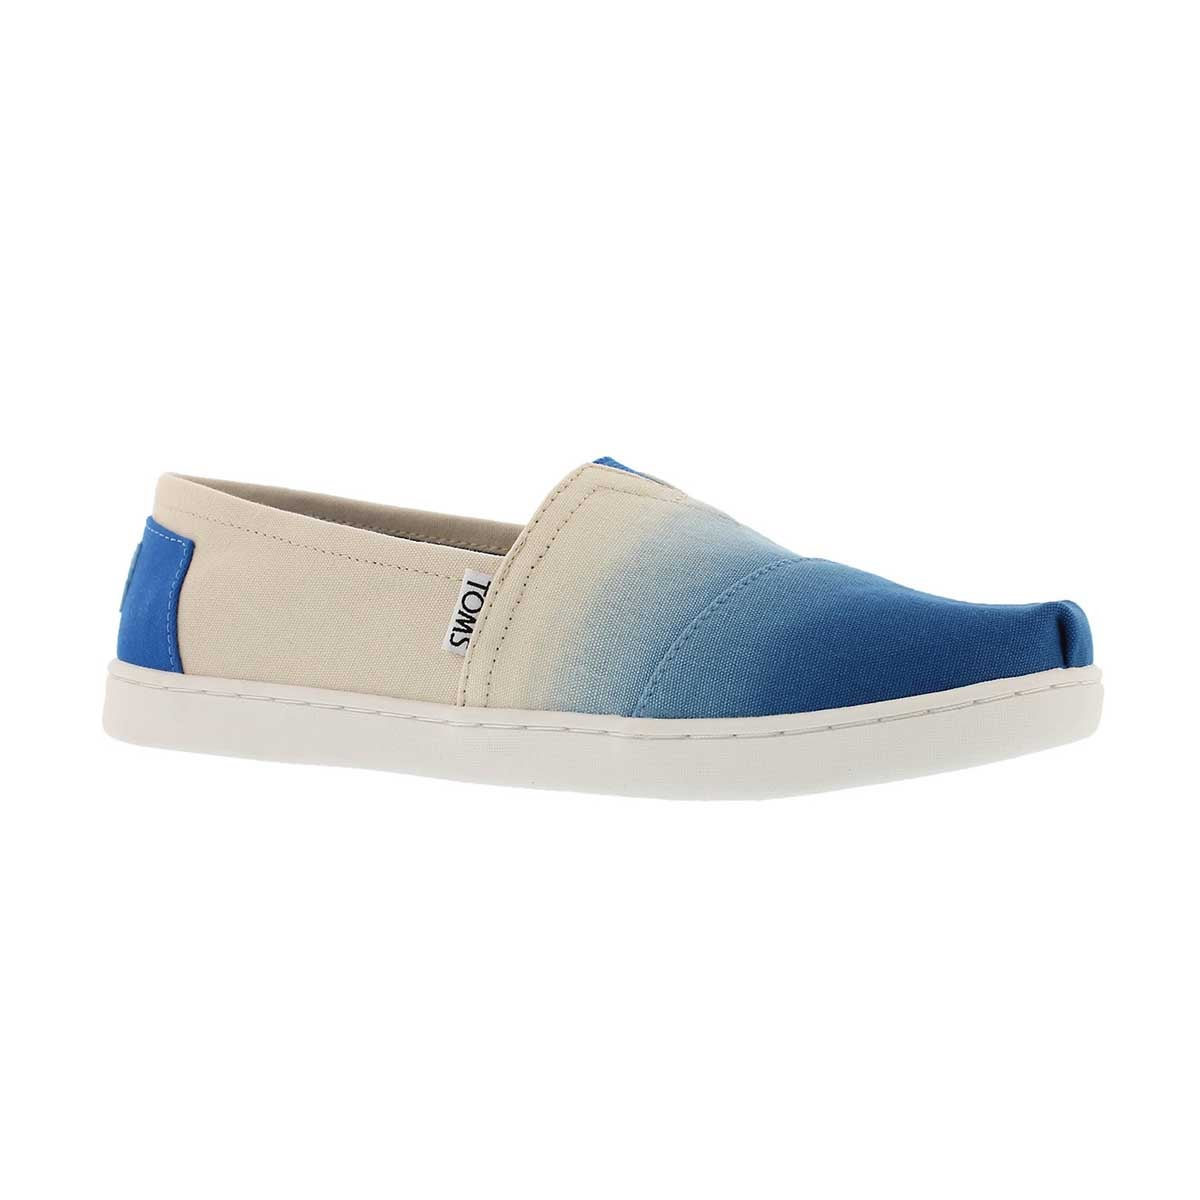 Girls' SEASONAL CLASSIC cobalt loafers